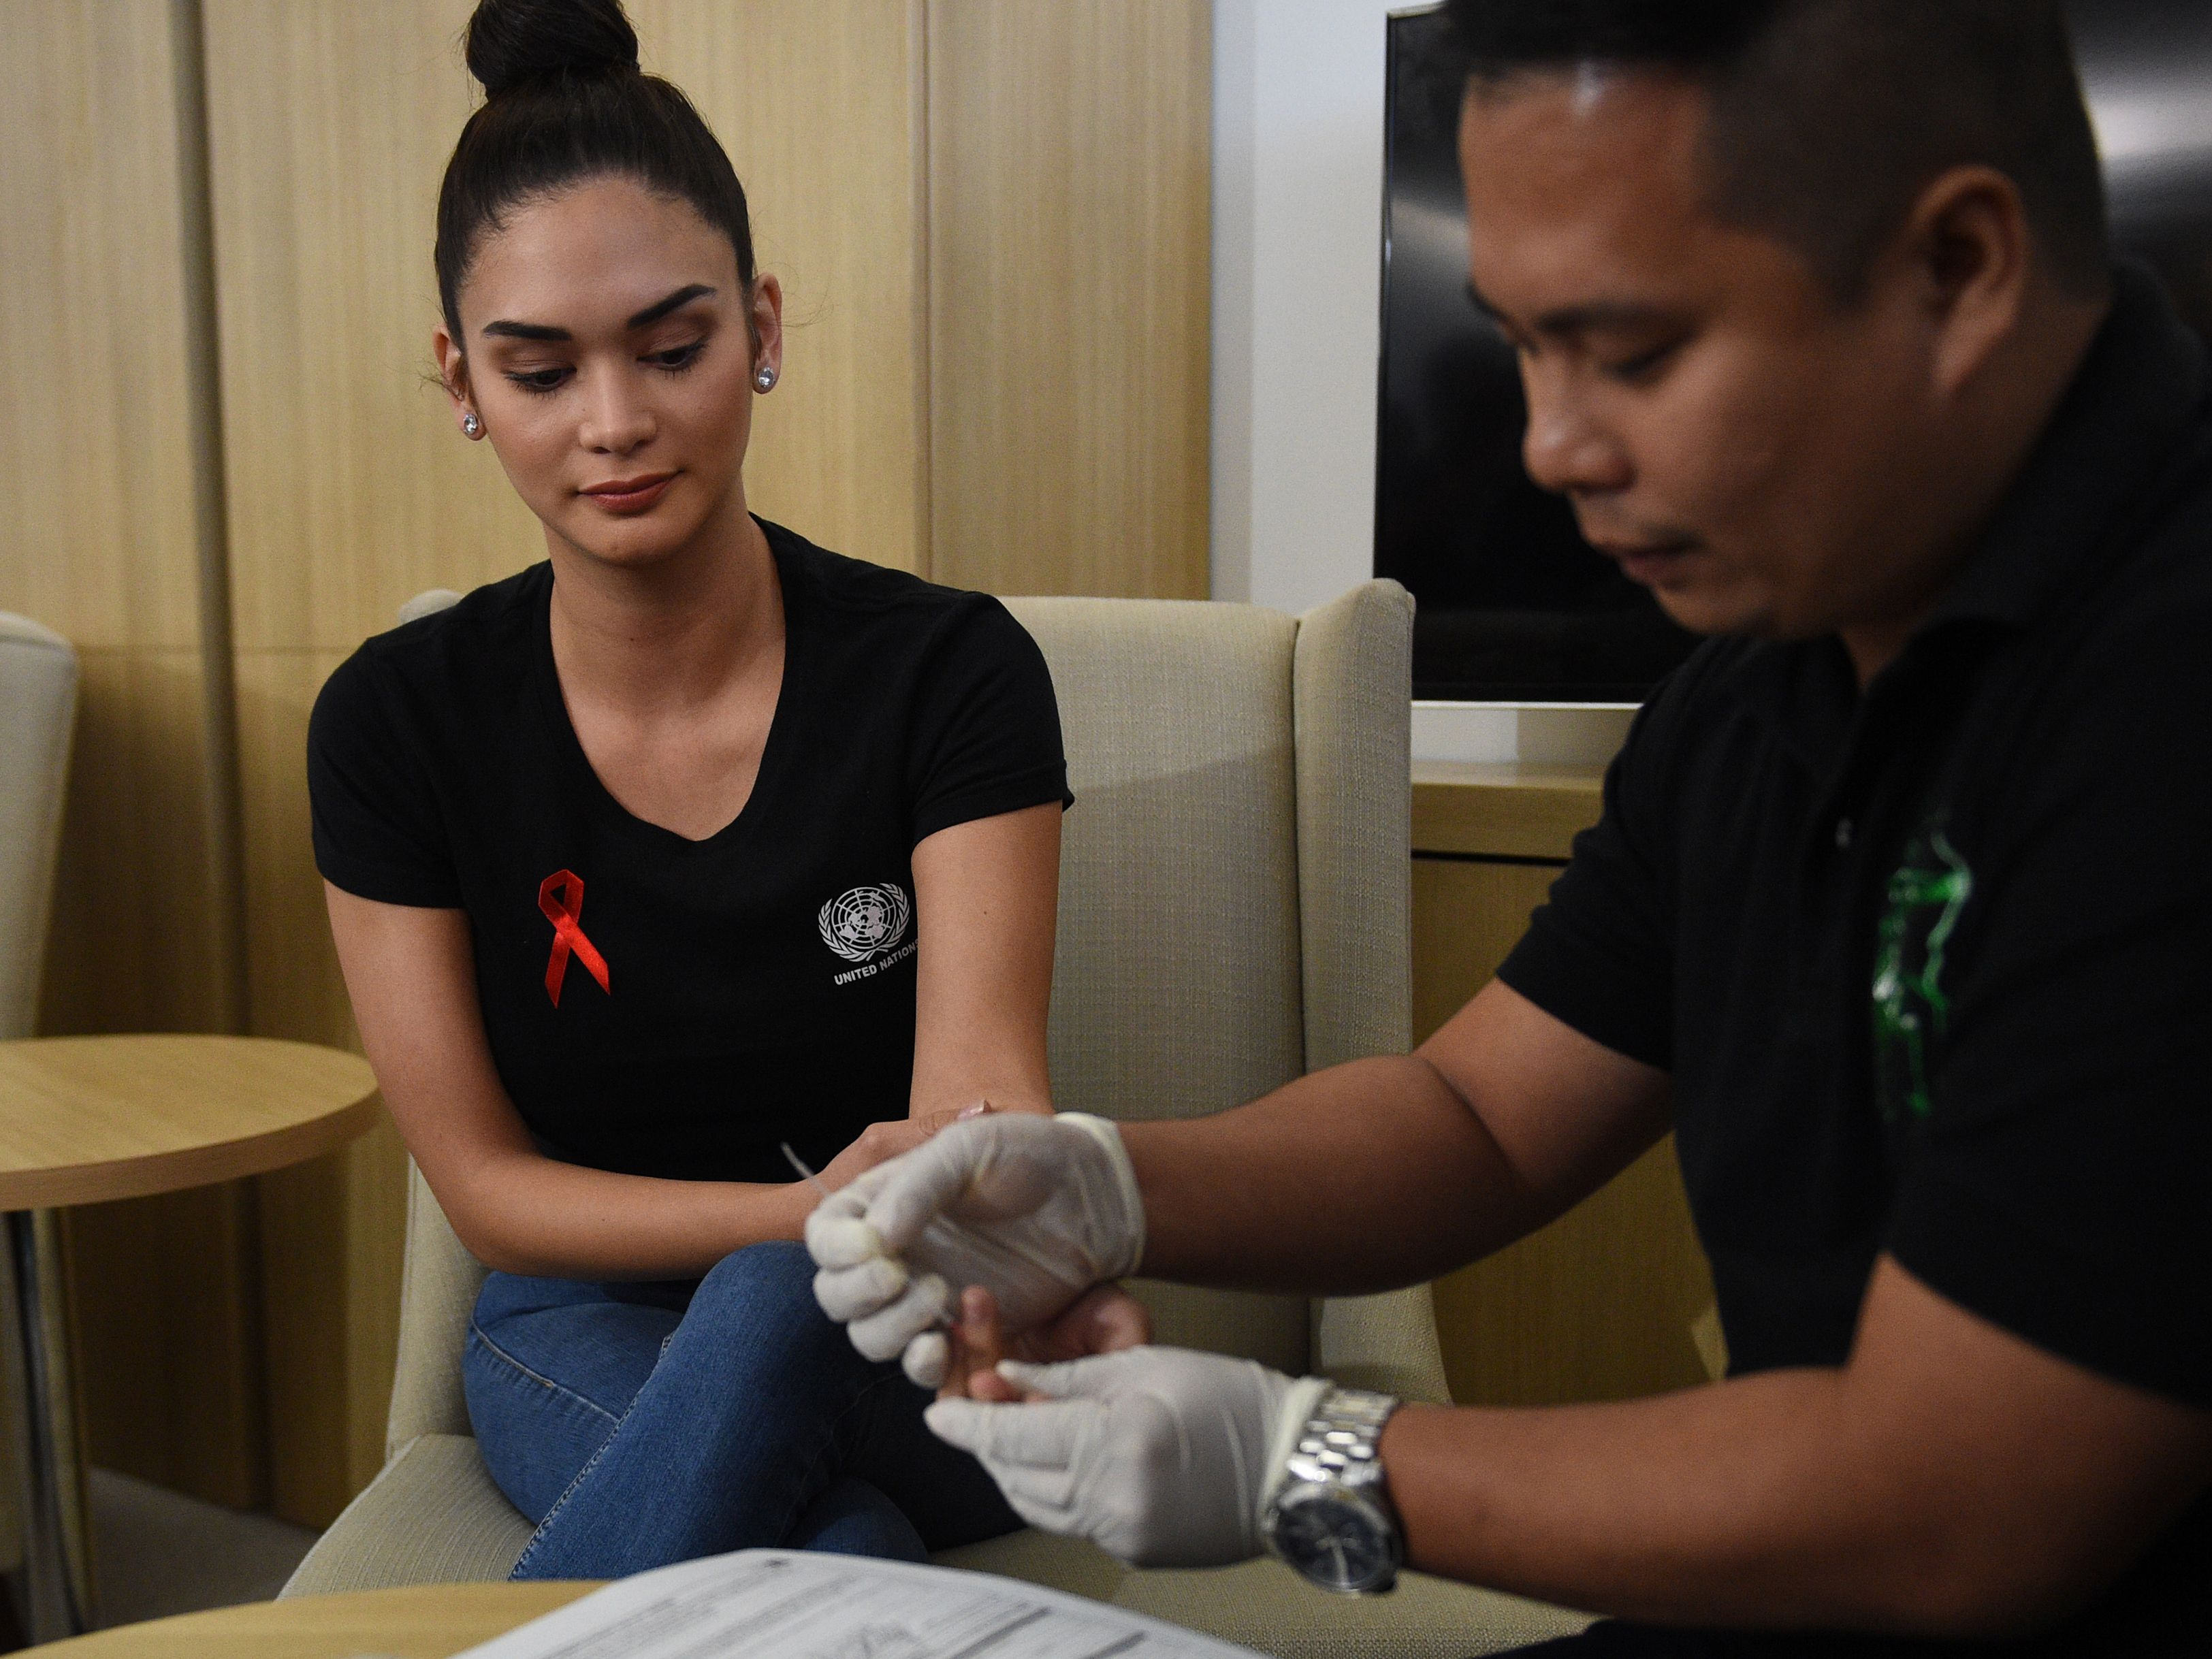 Pia Wurtzbach, The Philippines' former Miss Universe and UNAIDS goodwill ambassador for Asia, looks on as a medical worker extracts her blood sample for an HIV test at a government office in Taguig City, suburban Manila on August 9, 2017. (TED ALJIBE/AFP/Getty Images)